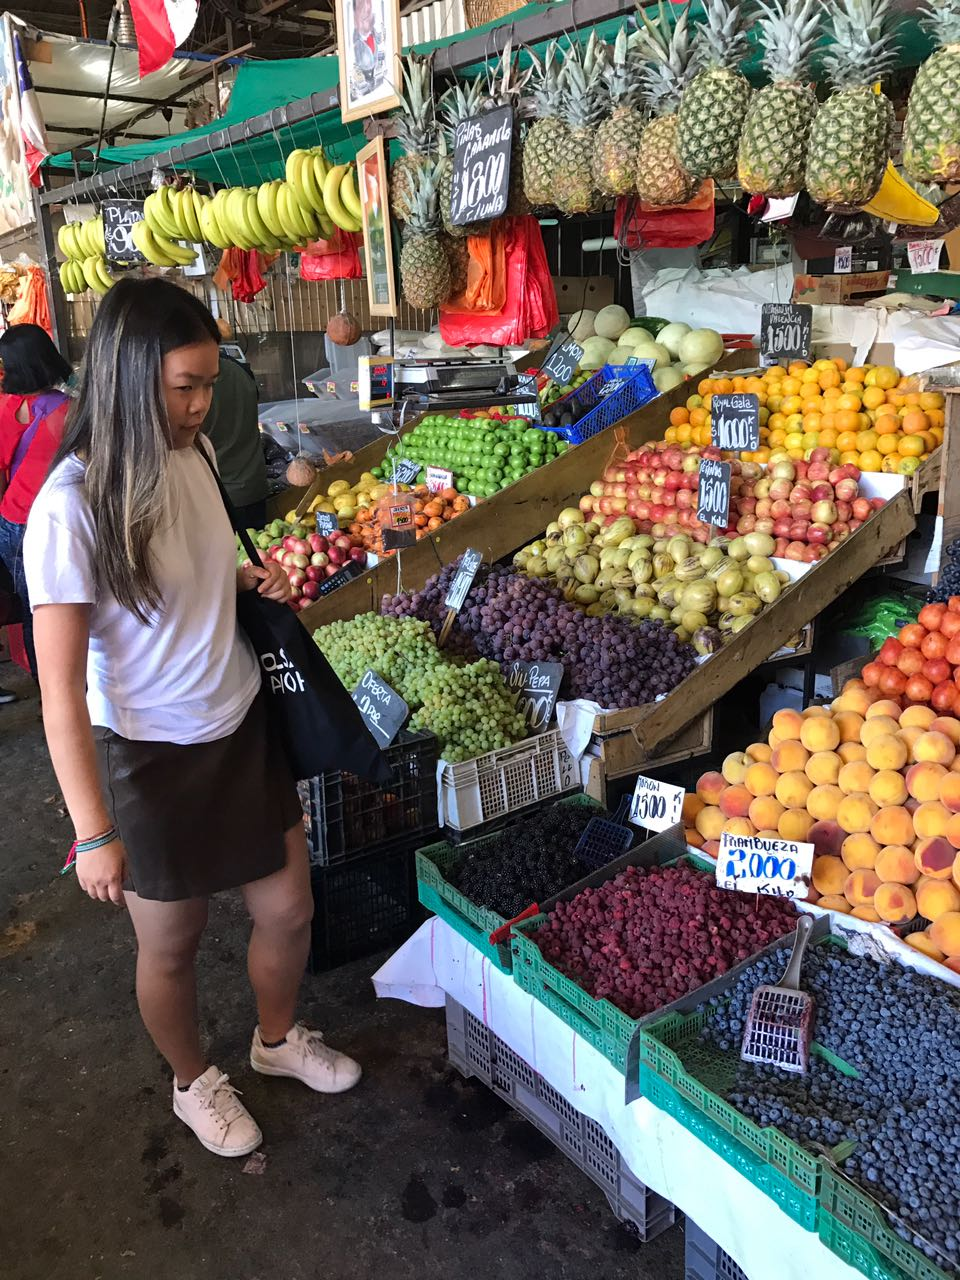 Alex looking at fresh fruit in the market